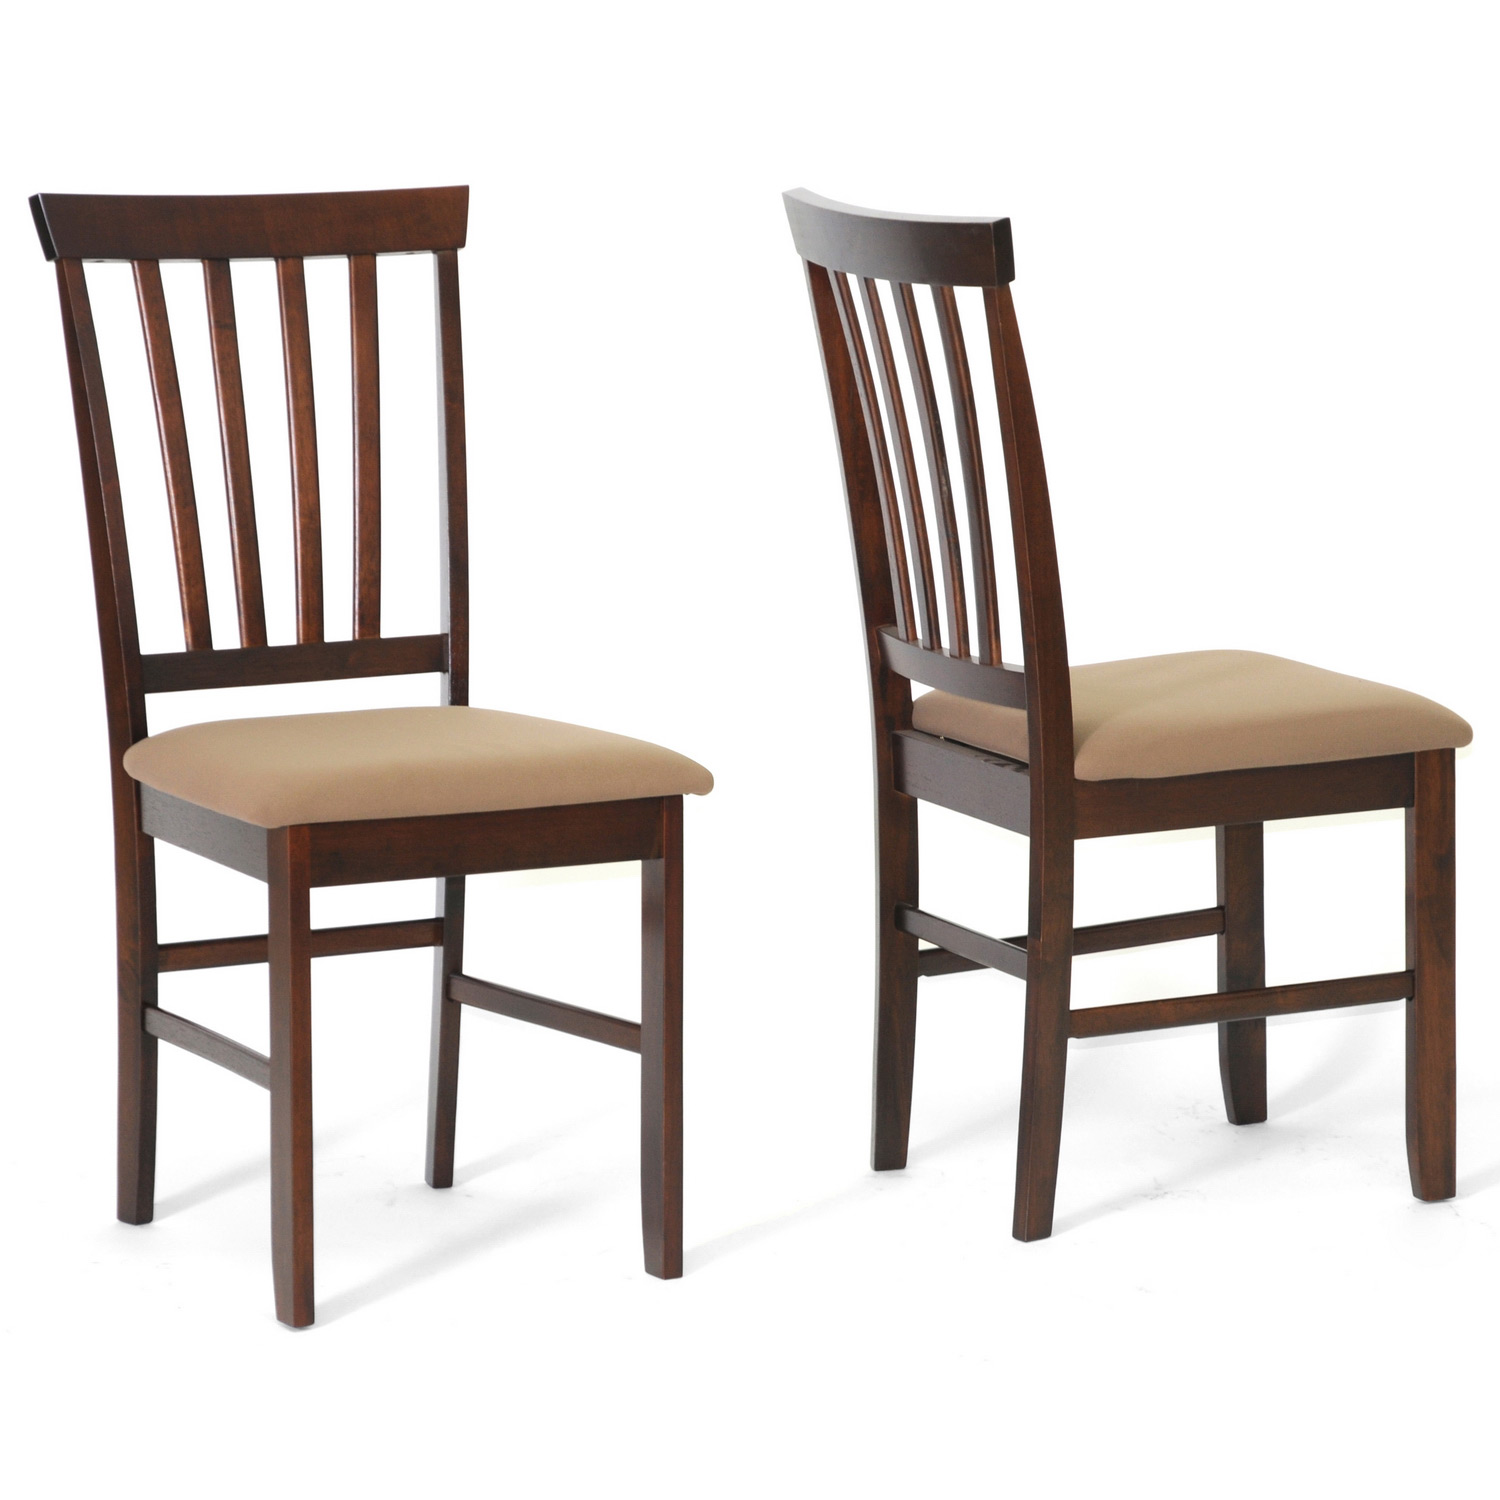 Modern Wooden Dining Room Chairs Tiffany Brown Wood Modern Dining Chairs Set Of 2 By